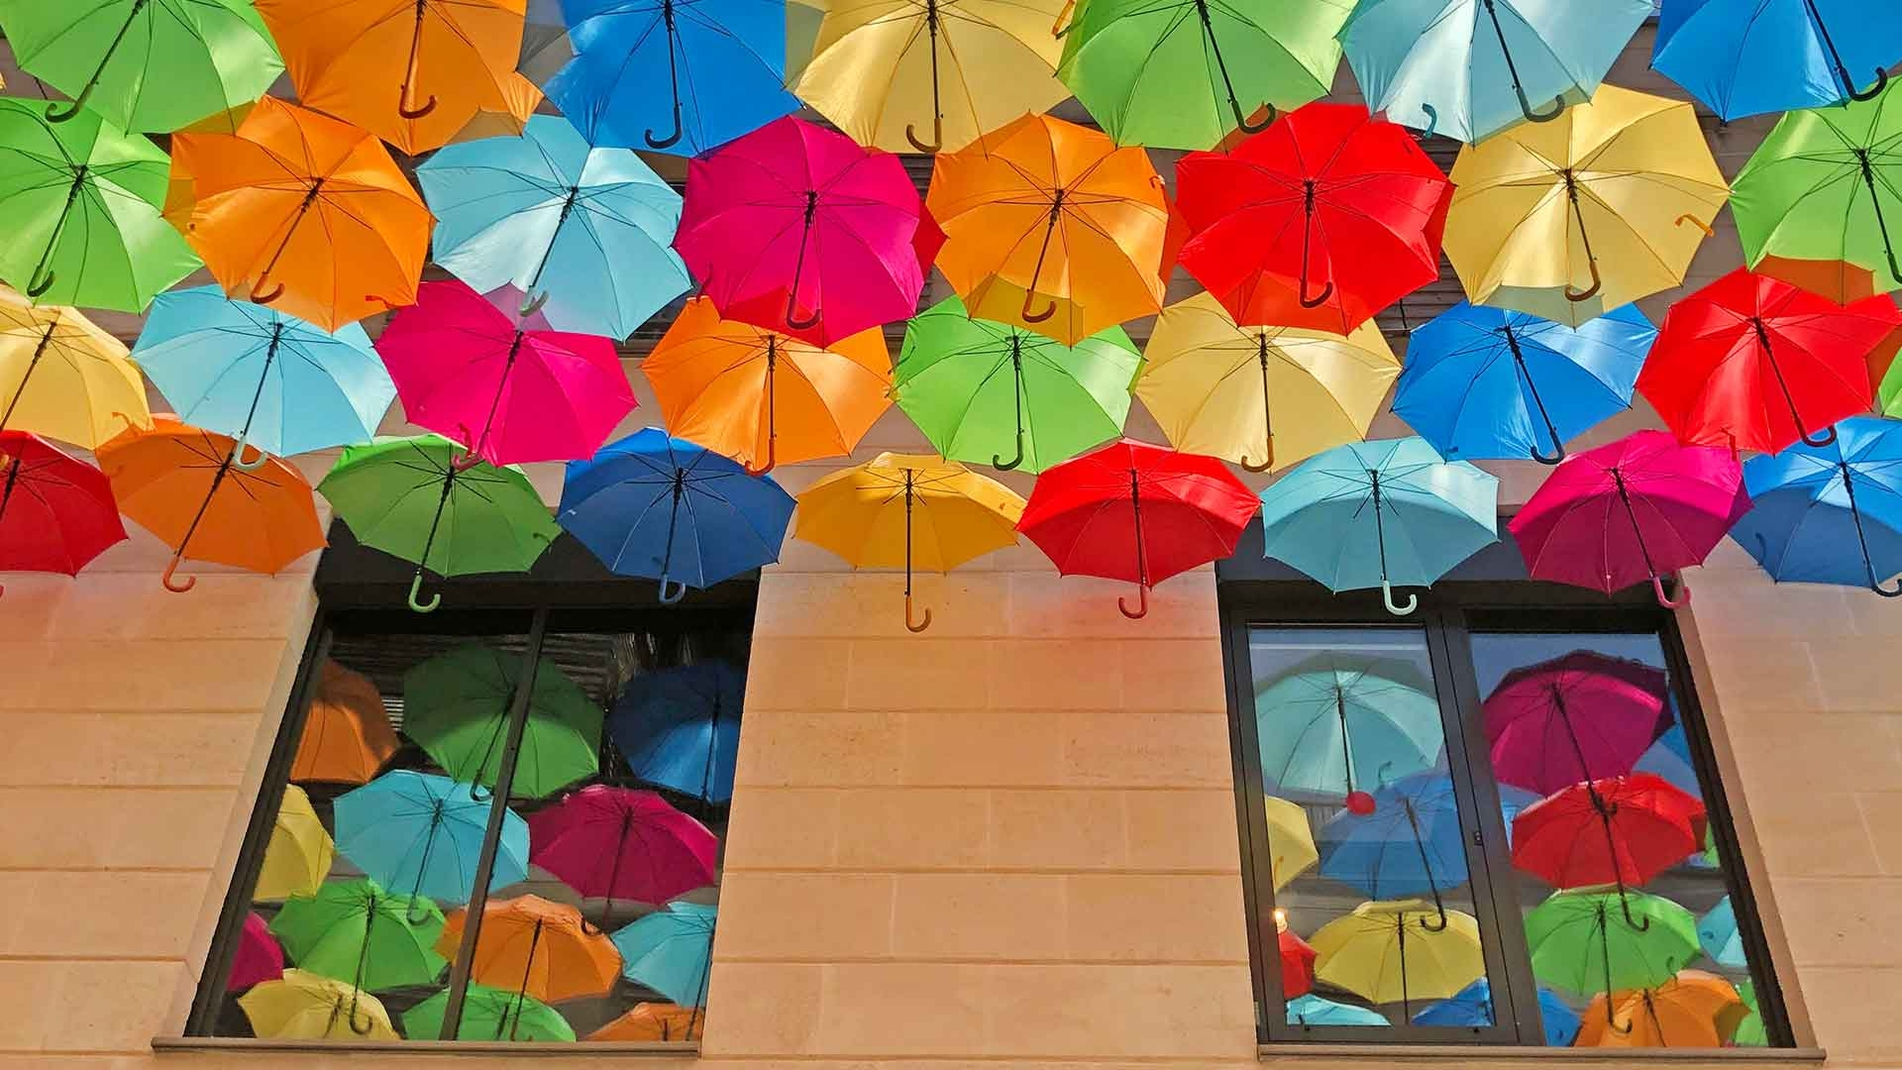 Umbrella Sky Project - Bordeaux'19